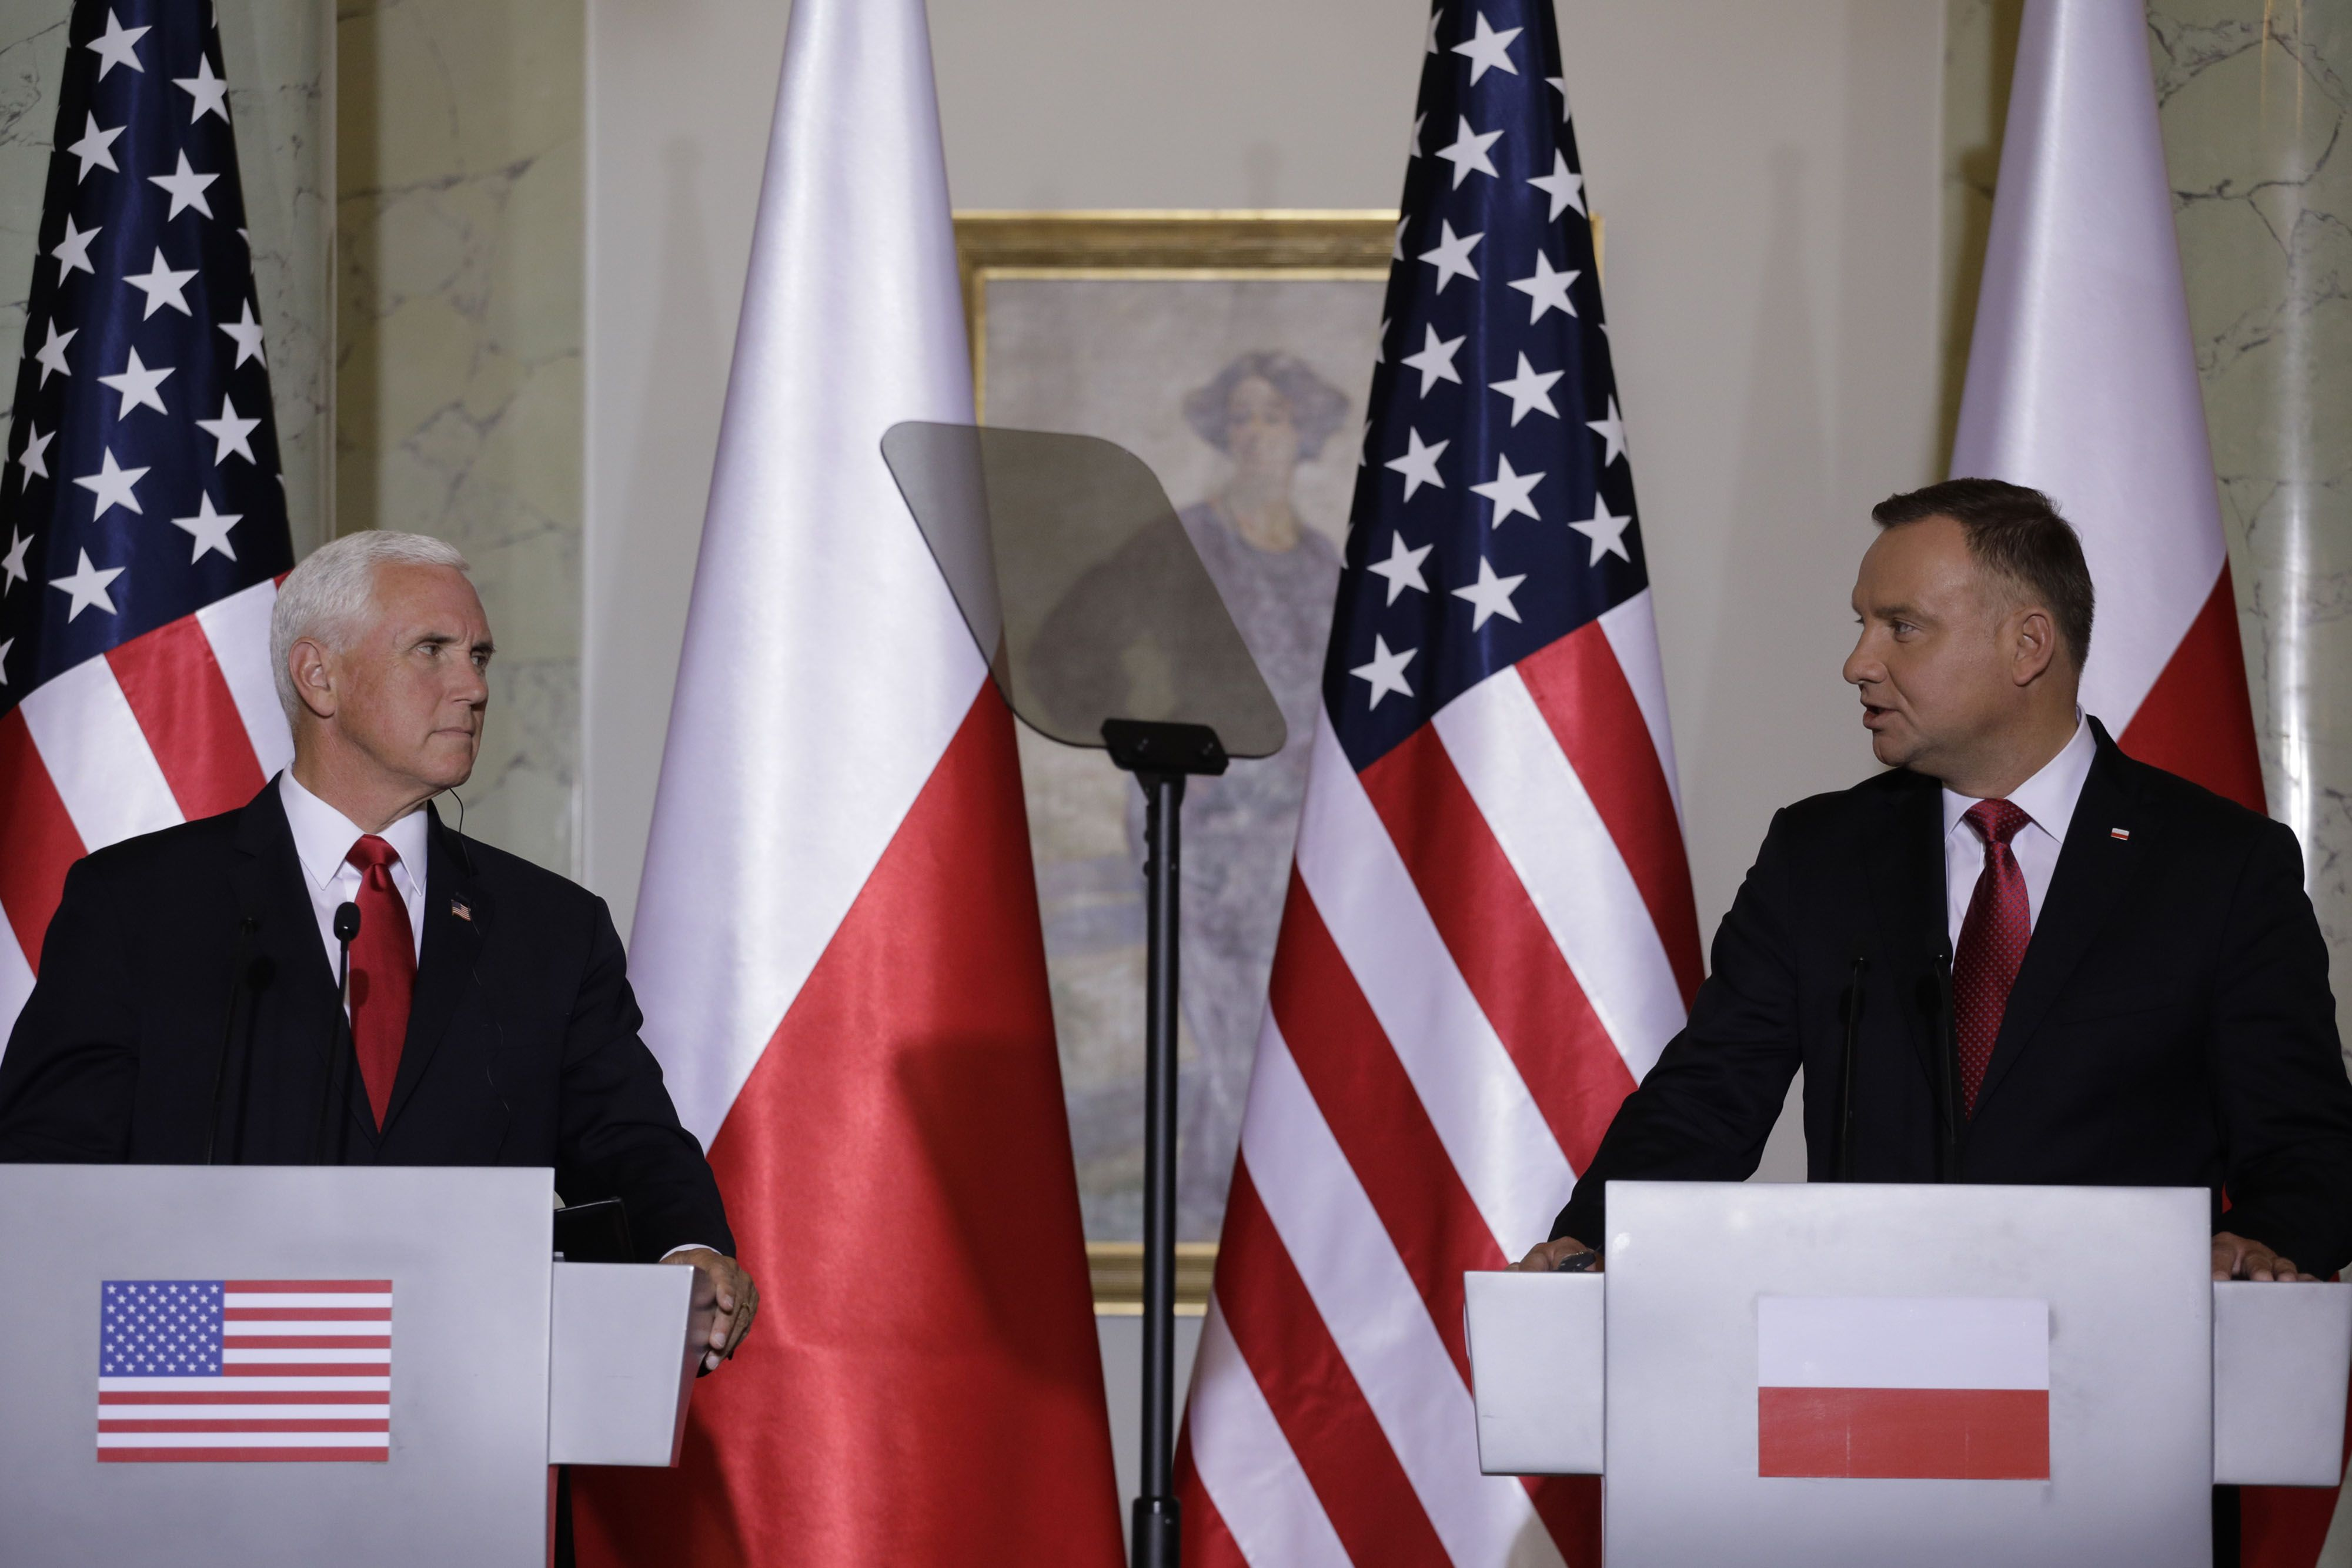 U.S. and Poland Ink 5G Security Agreement Amid Anti-Huawei Campaign